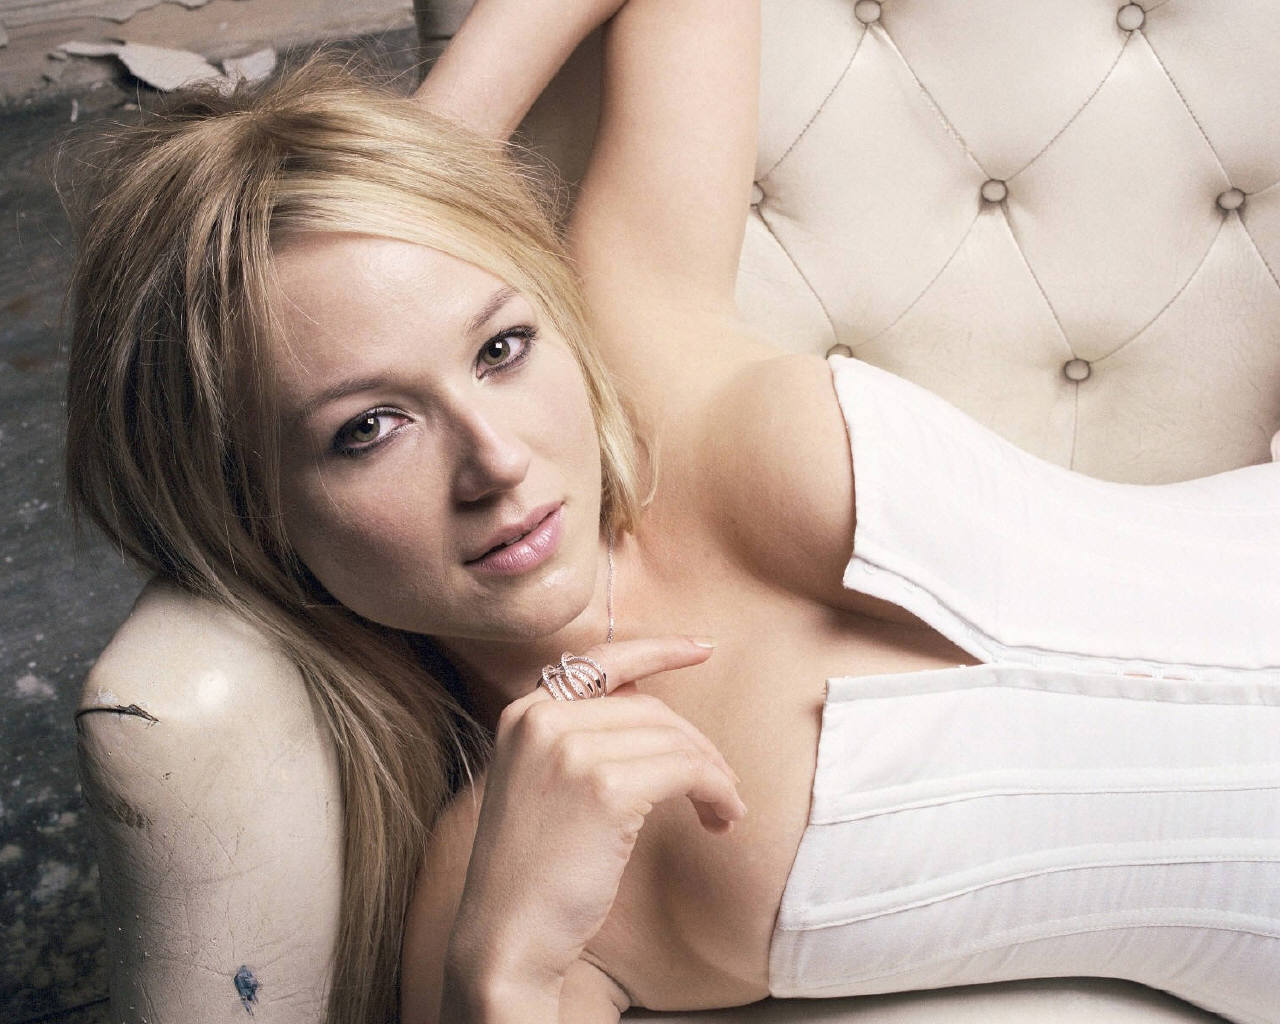 Jewel Kilcher - Beautiful Photos